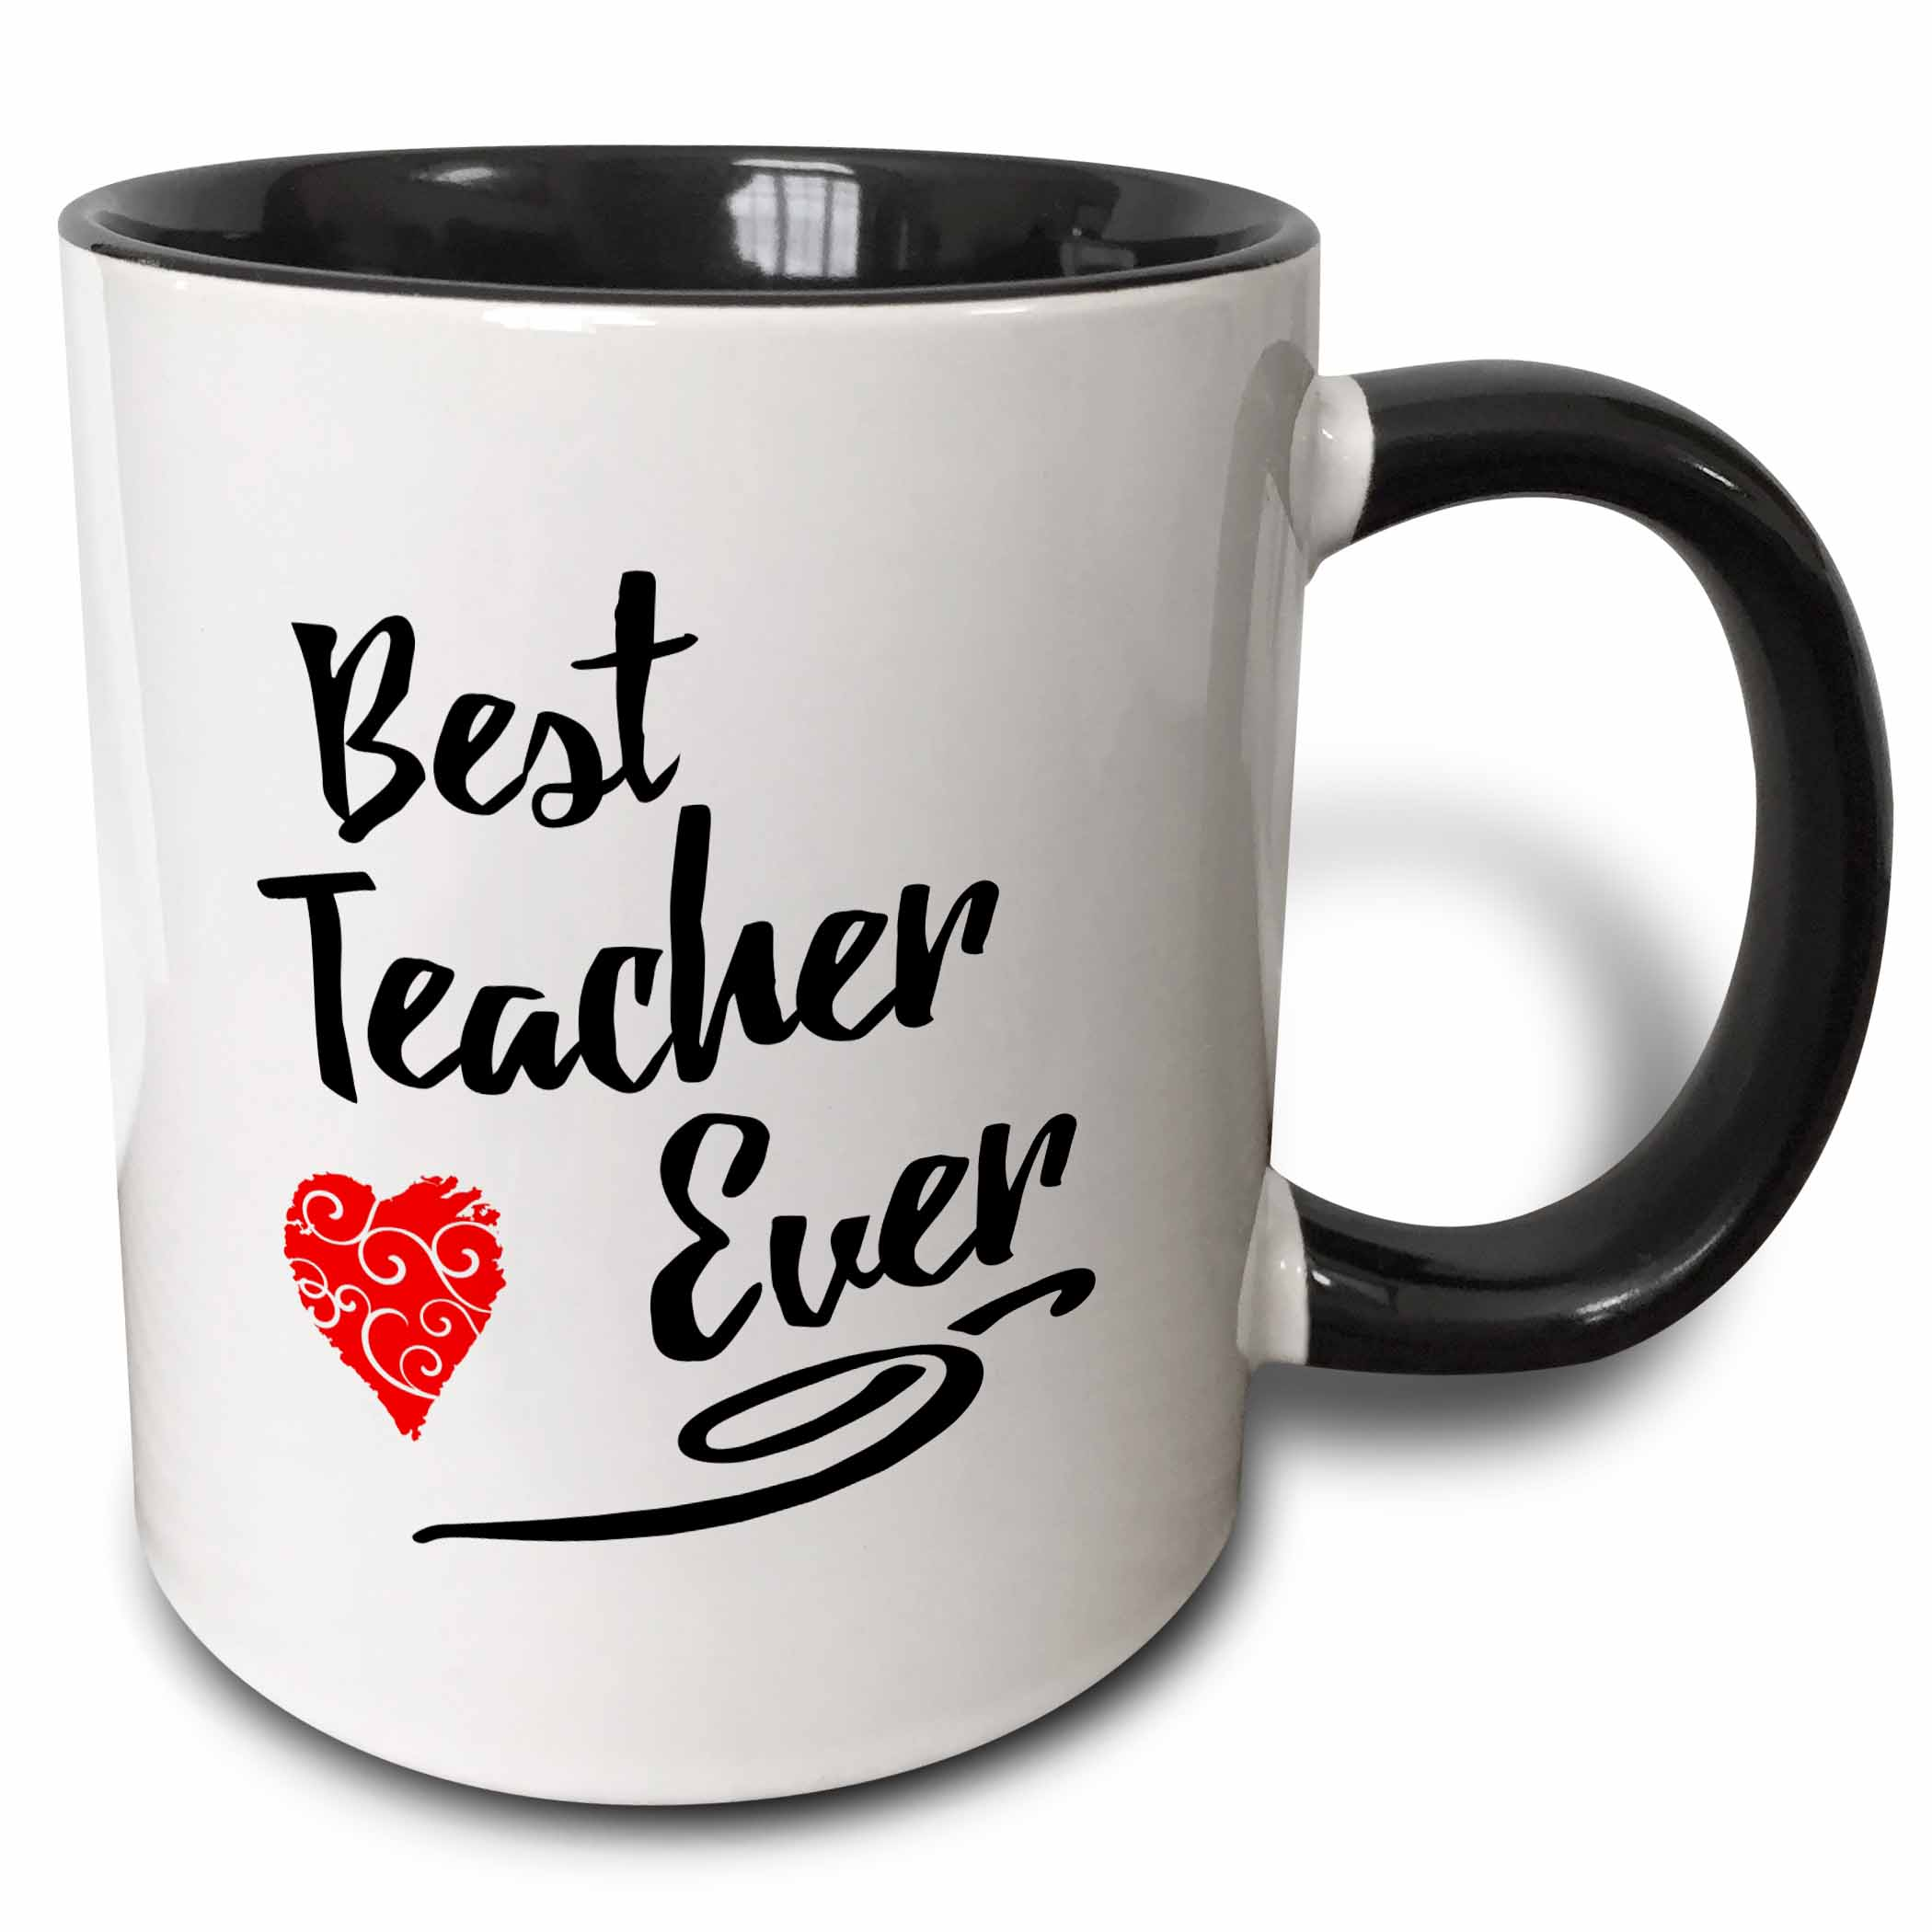 3dRose Typographic Design- Best Teacher Ever in Black with Red Swirly Heart - Two Tone Black Mug, 11-ounce